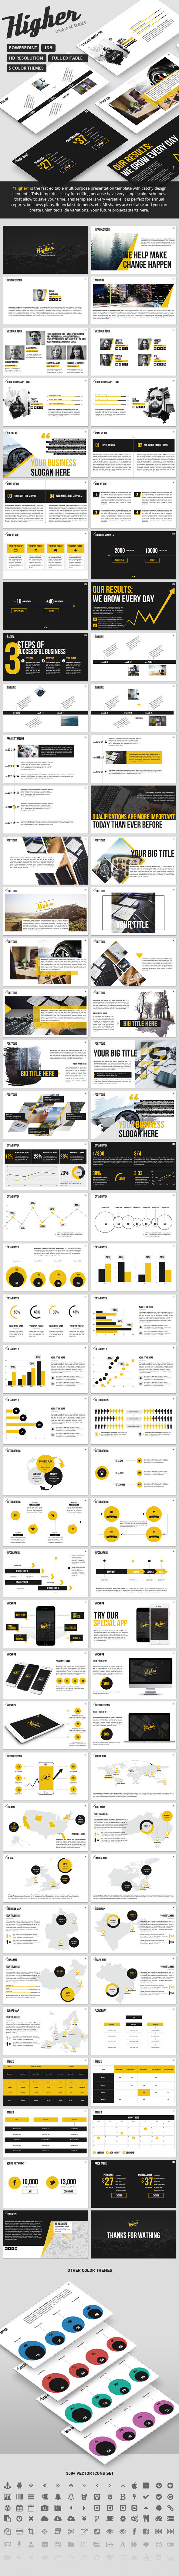 Higher - Creative PowerPoint Template  - PowerPoint Templates Presentation Templates